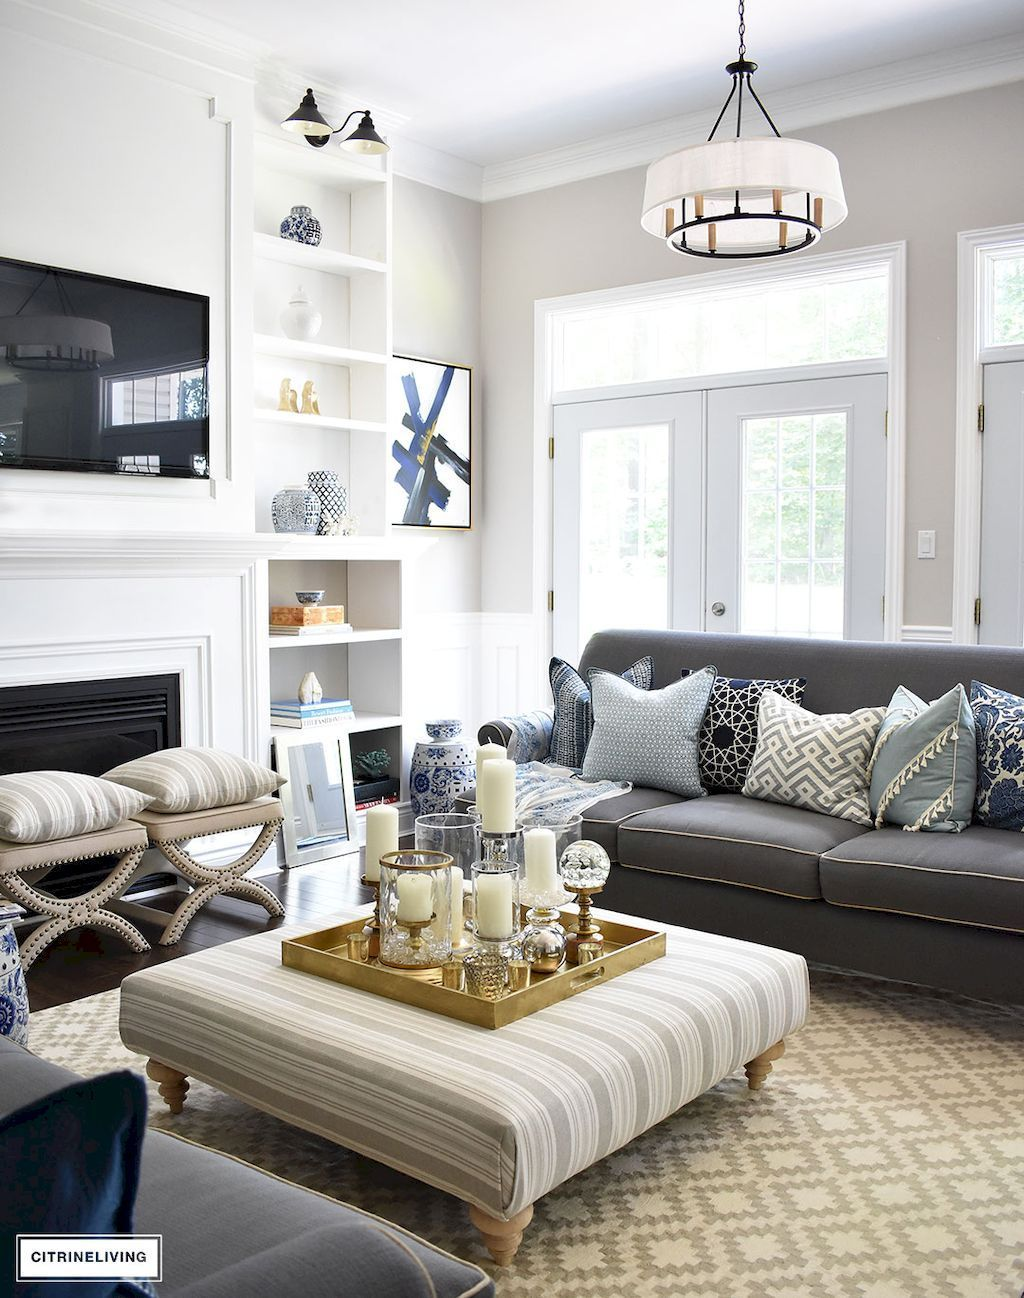 Rustic Farmhouse Living Room Design And Decoration Ideas 36 Ottoman In Living Room Rustic Farmhouse Living Room Ottoman Coffee Table Decor [ 1298 x 1024 Pixel ]